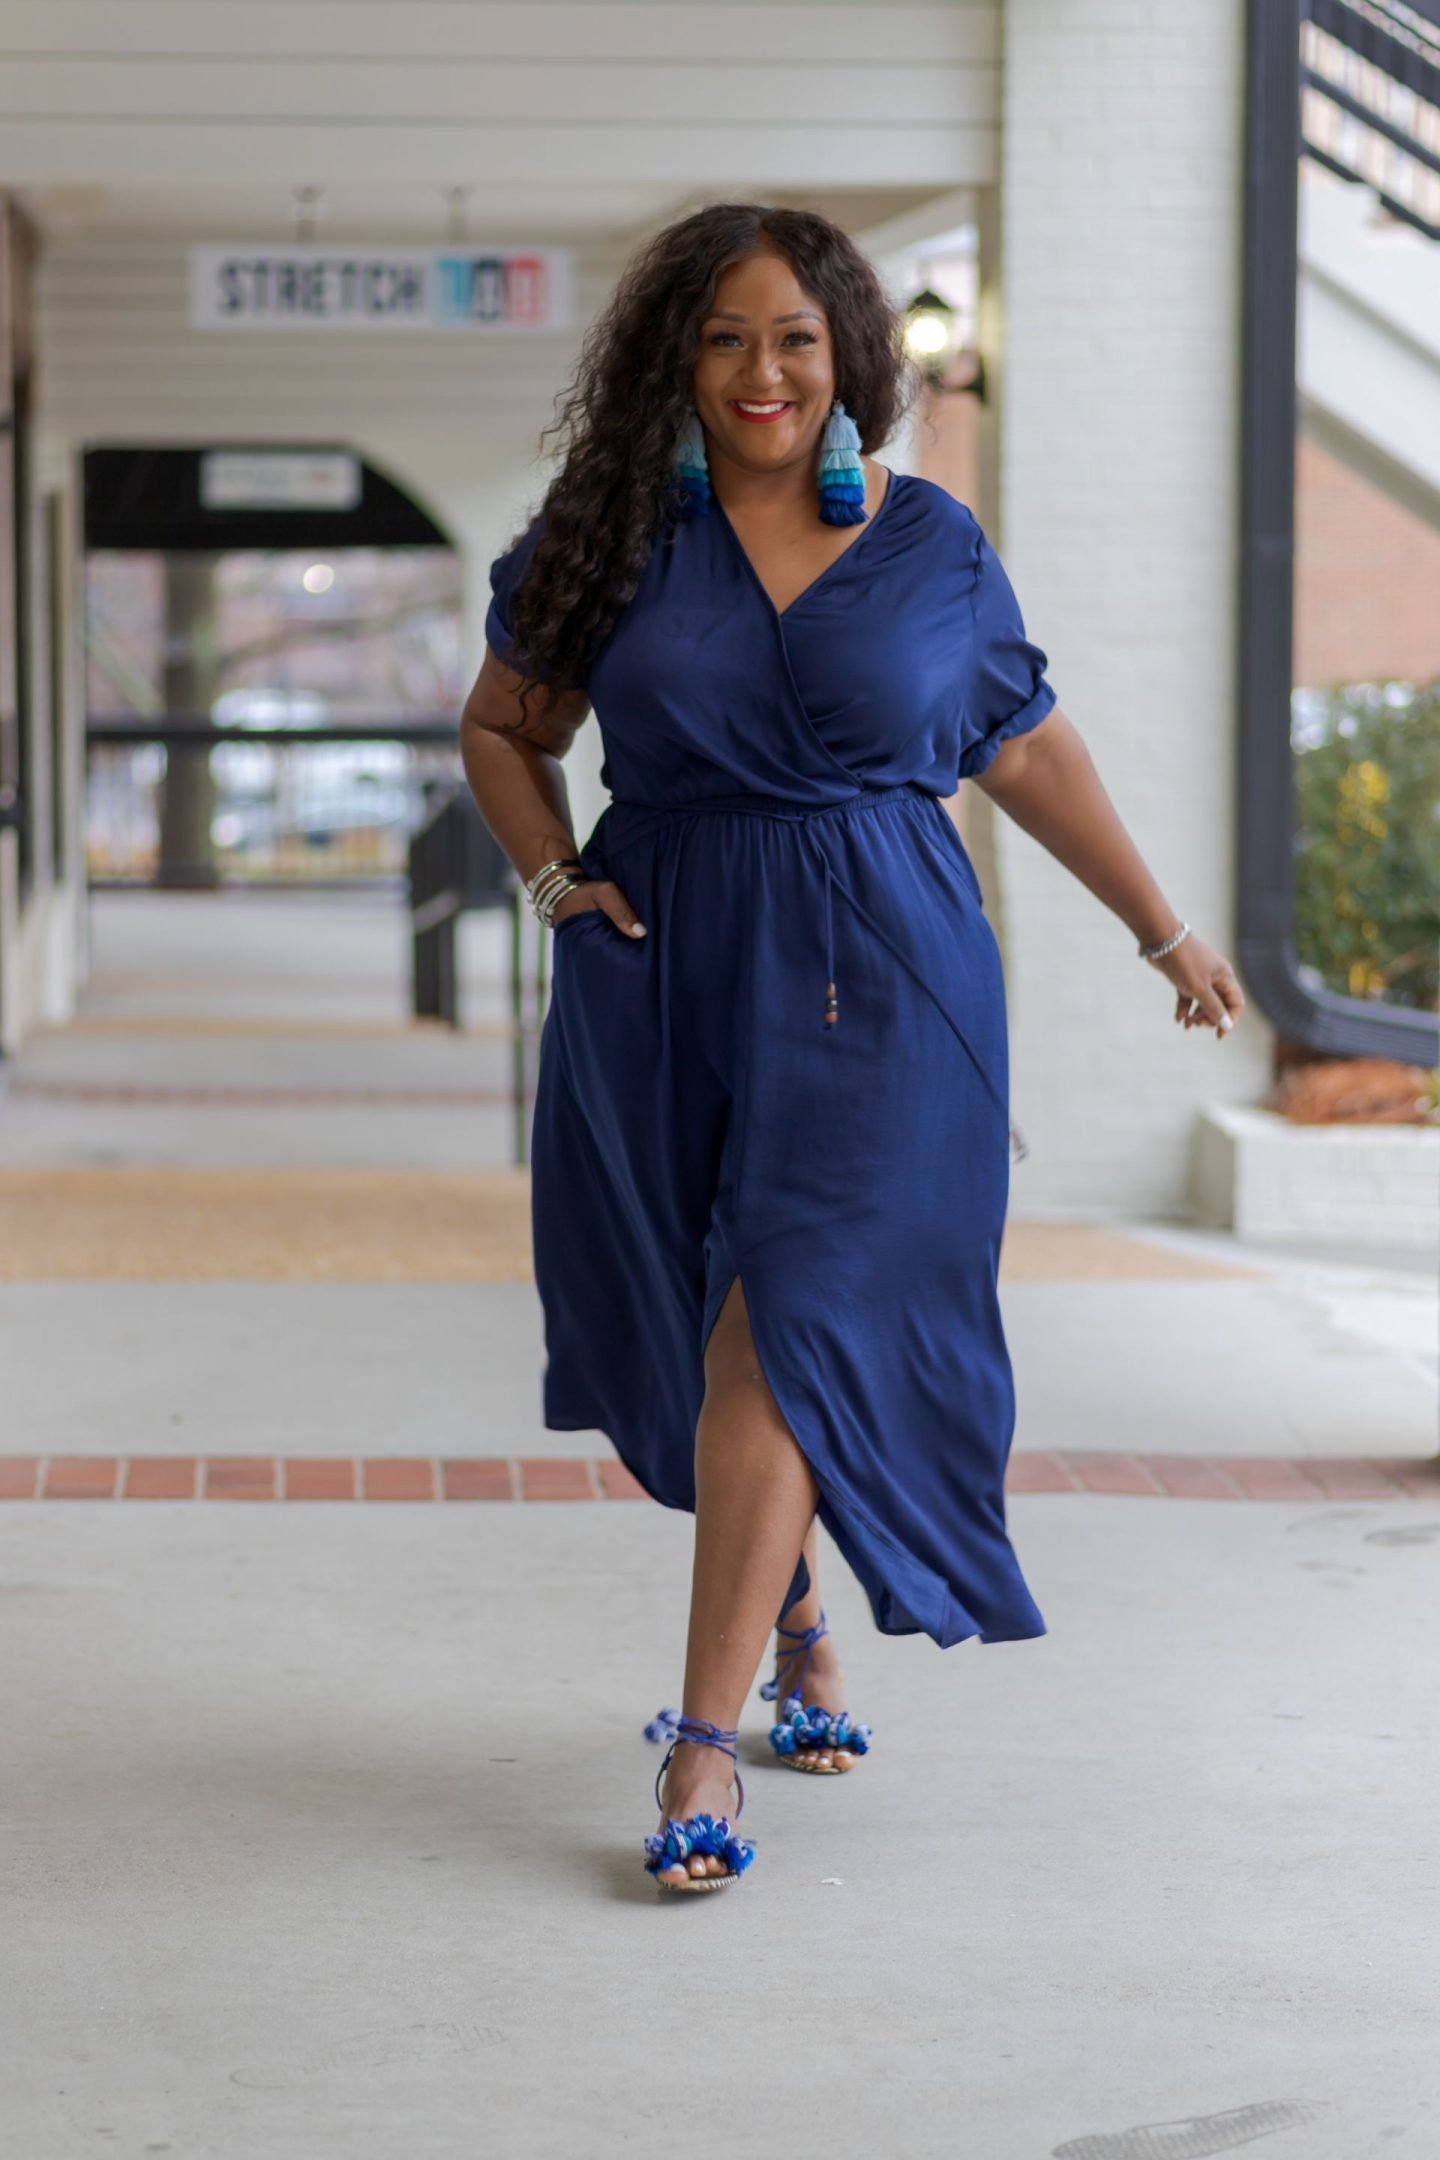 Influencer Nikki Free walking down sidewalk in blue dress